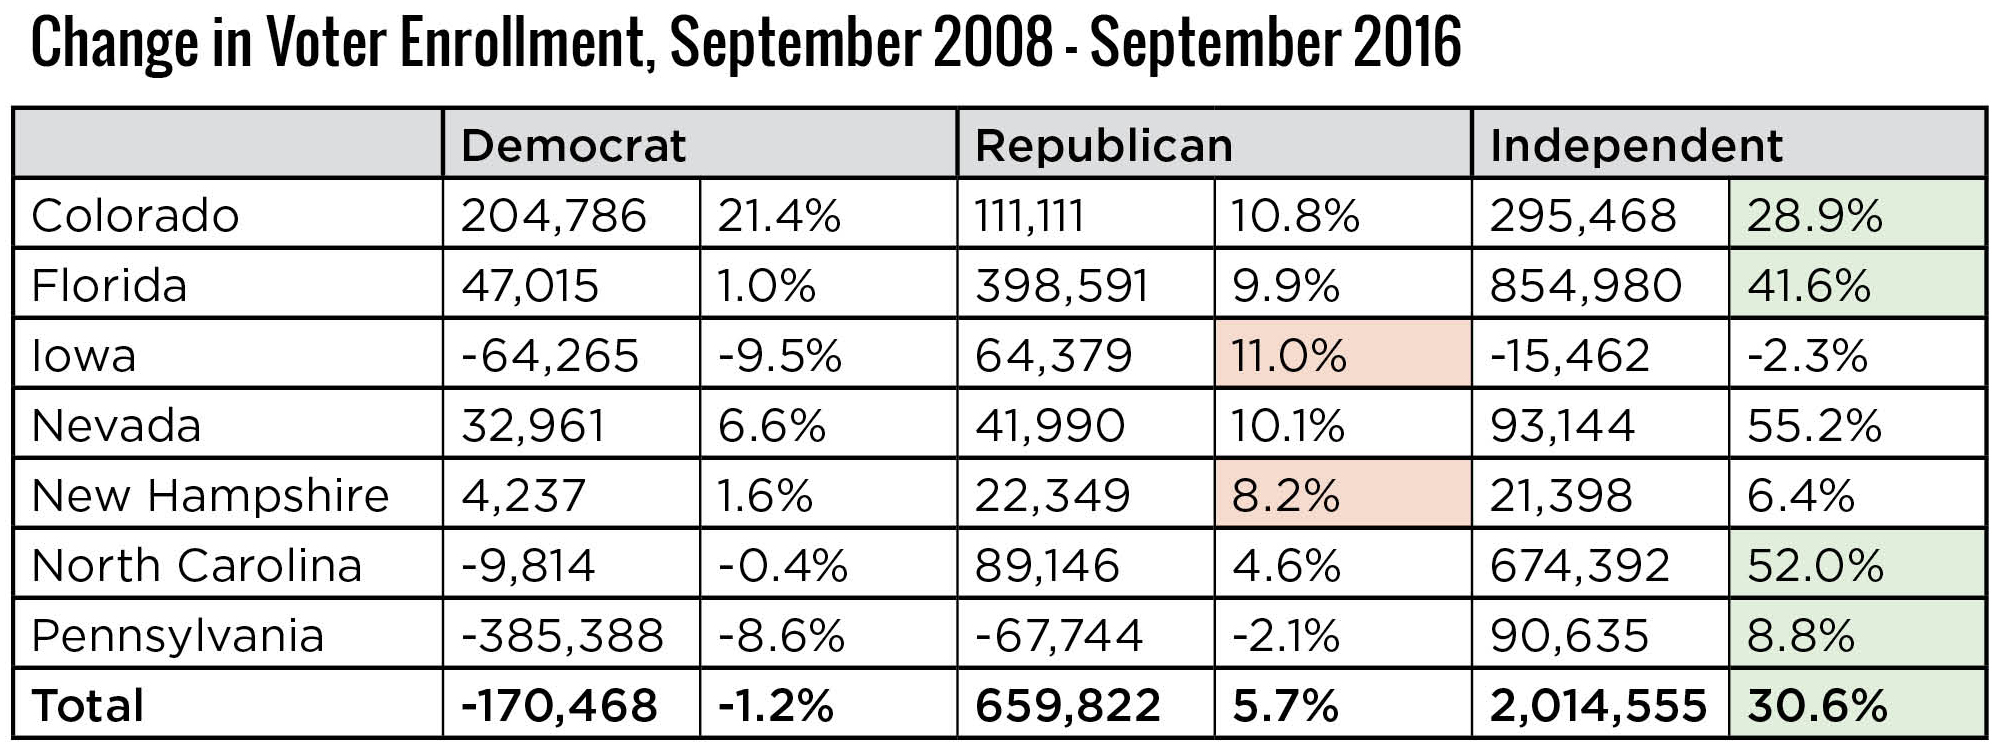 Change in Voter Enrollment, September 2008-September 2016